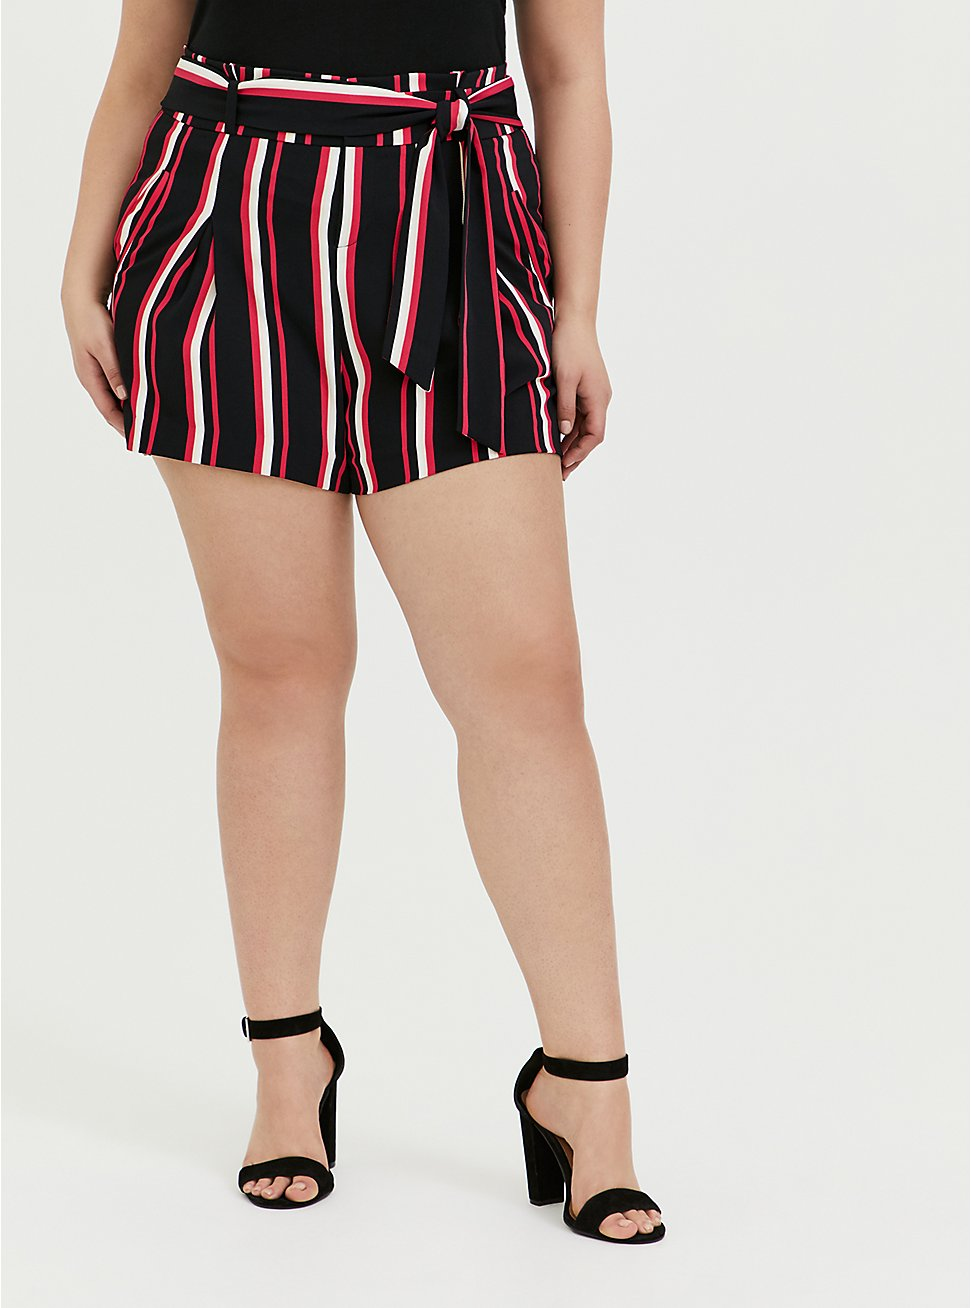 Self Tie Mid Short - Black & Fuchsia Pink Stripe, STRIPES, hi-res